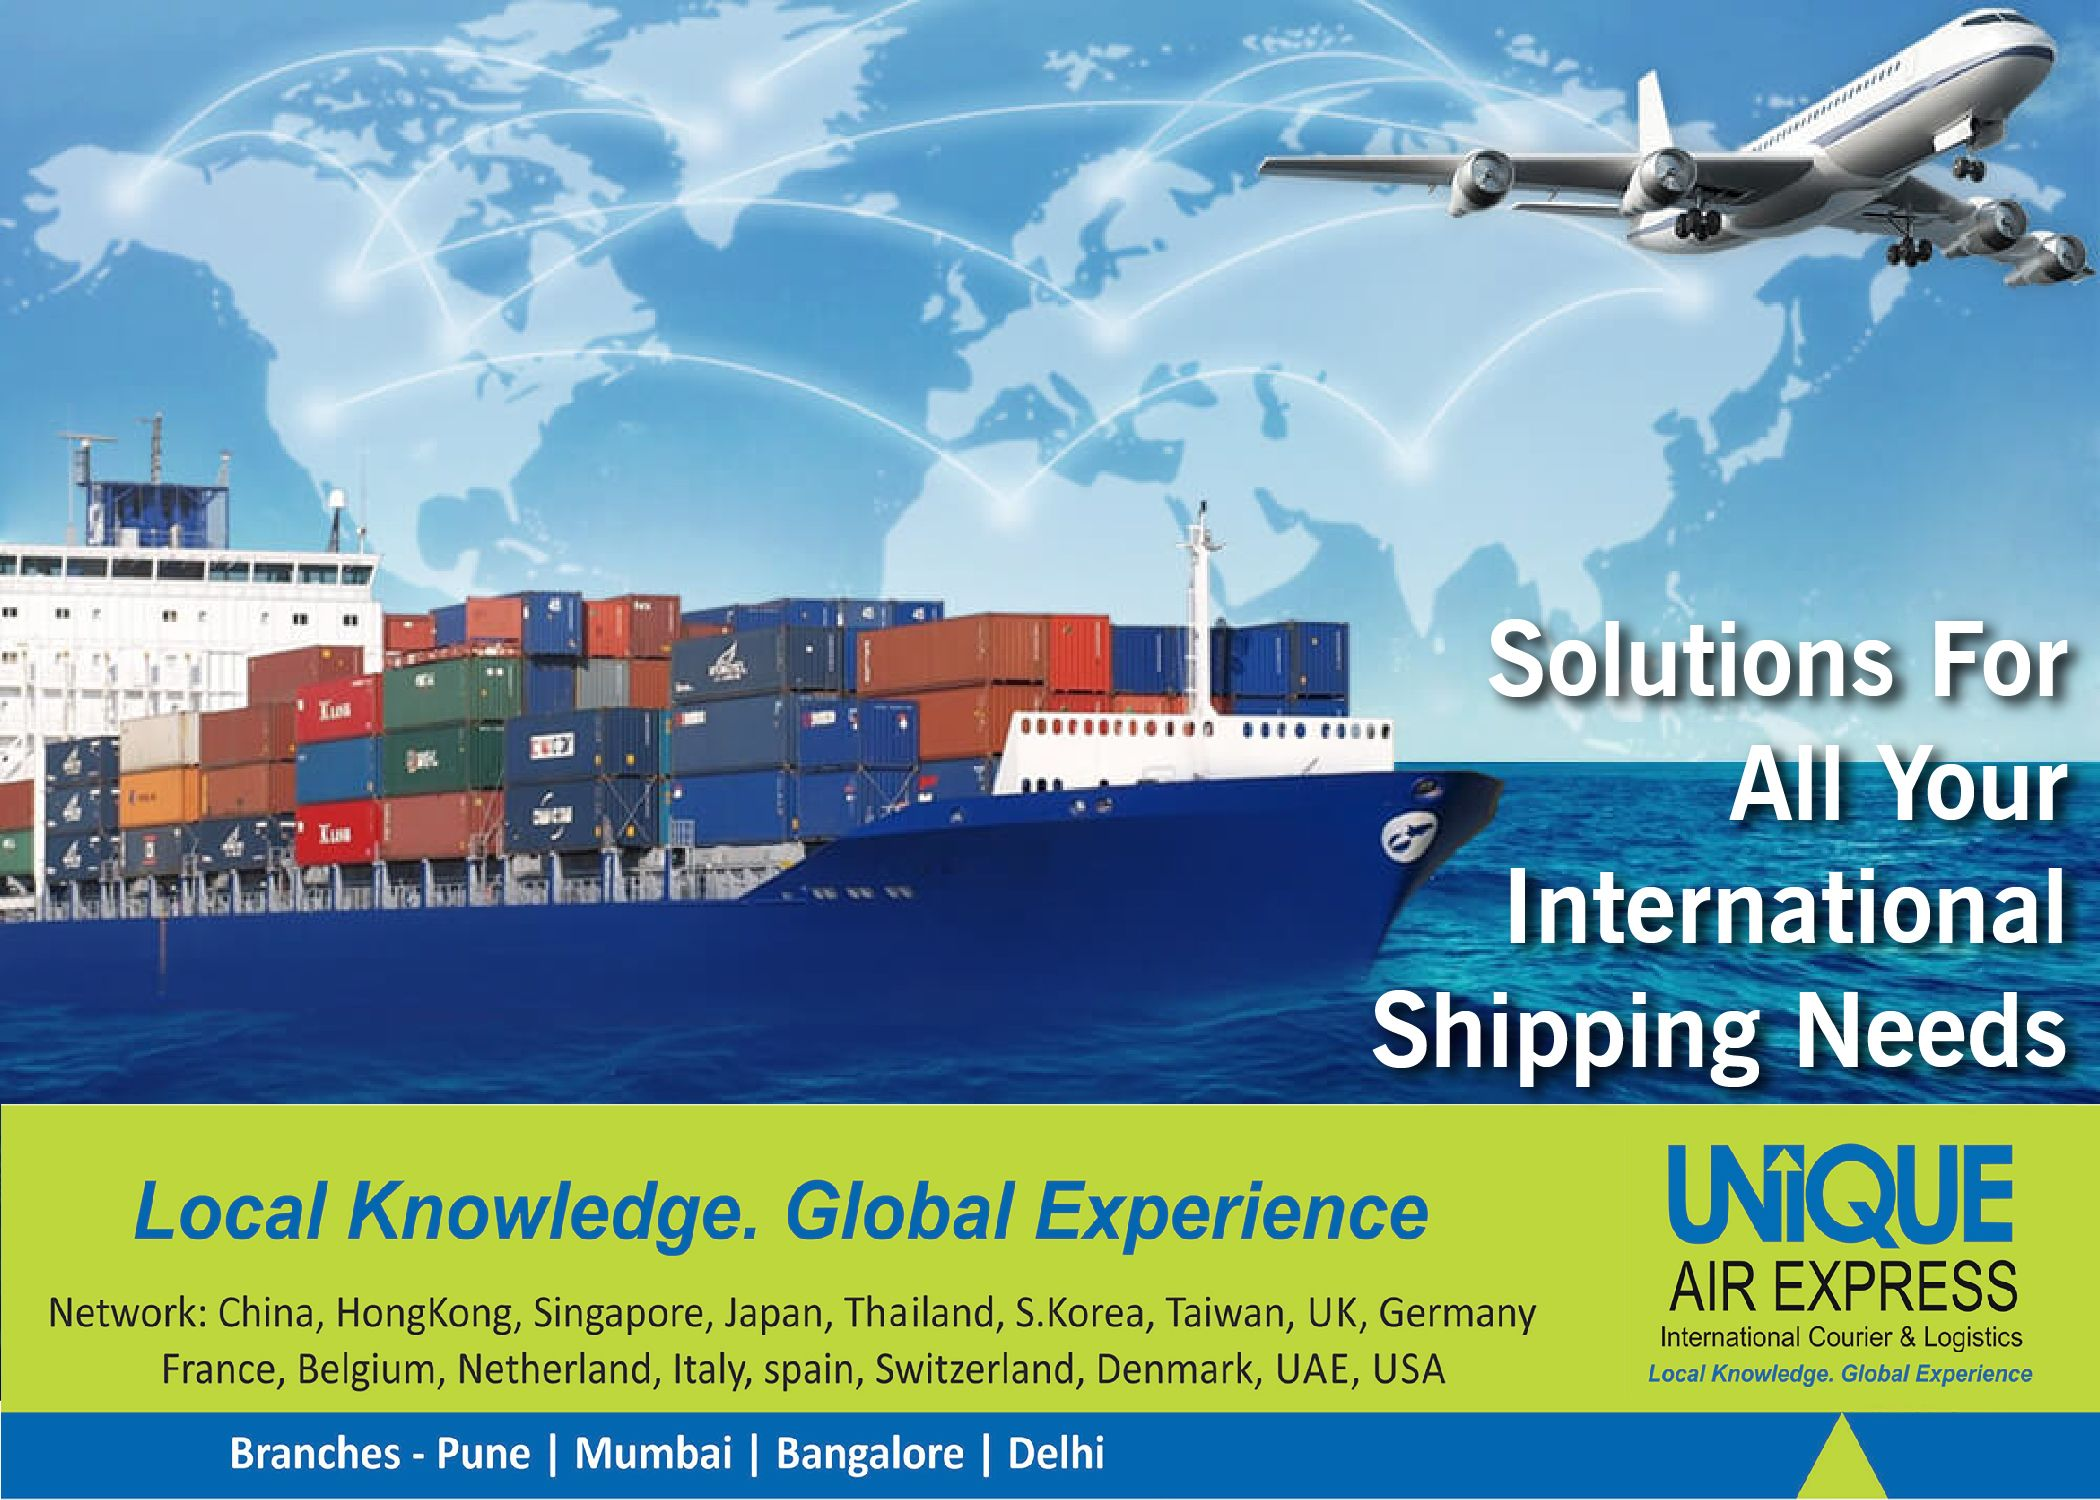 Solution for all Your International Shipping Needs is